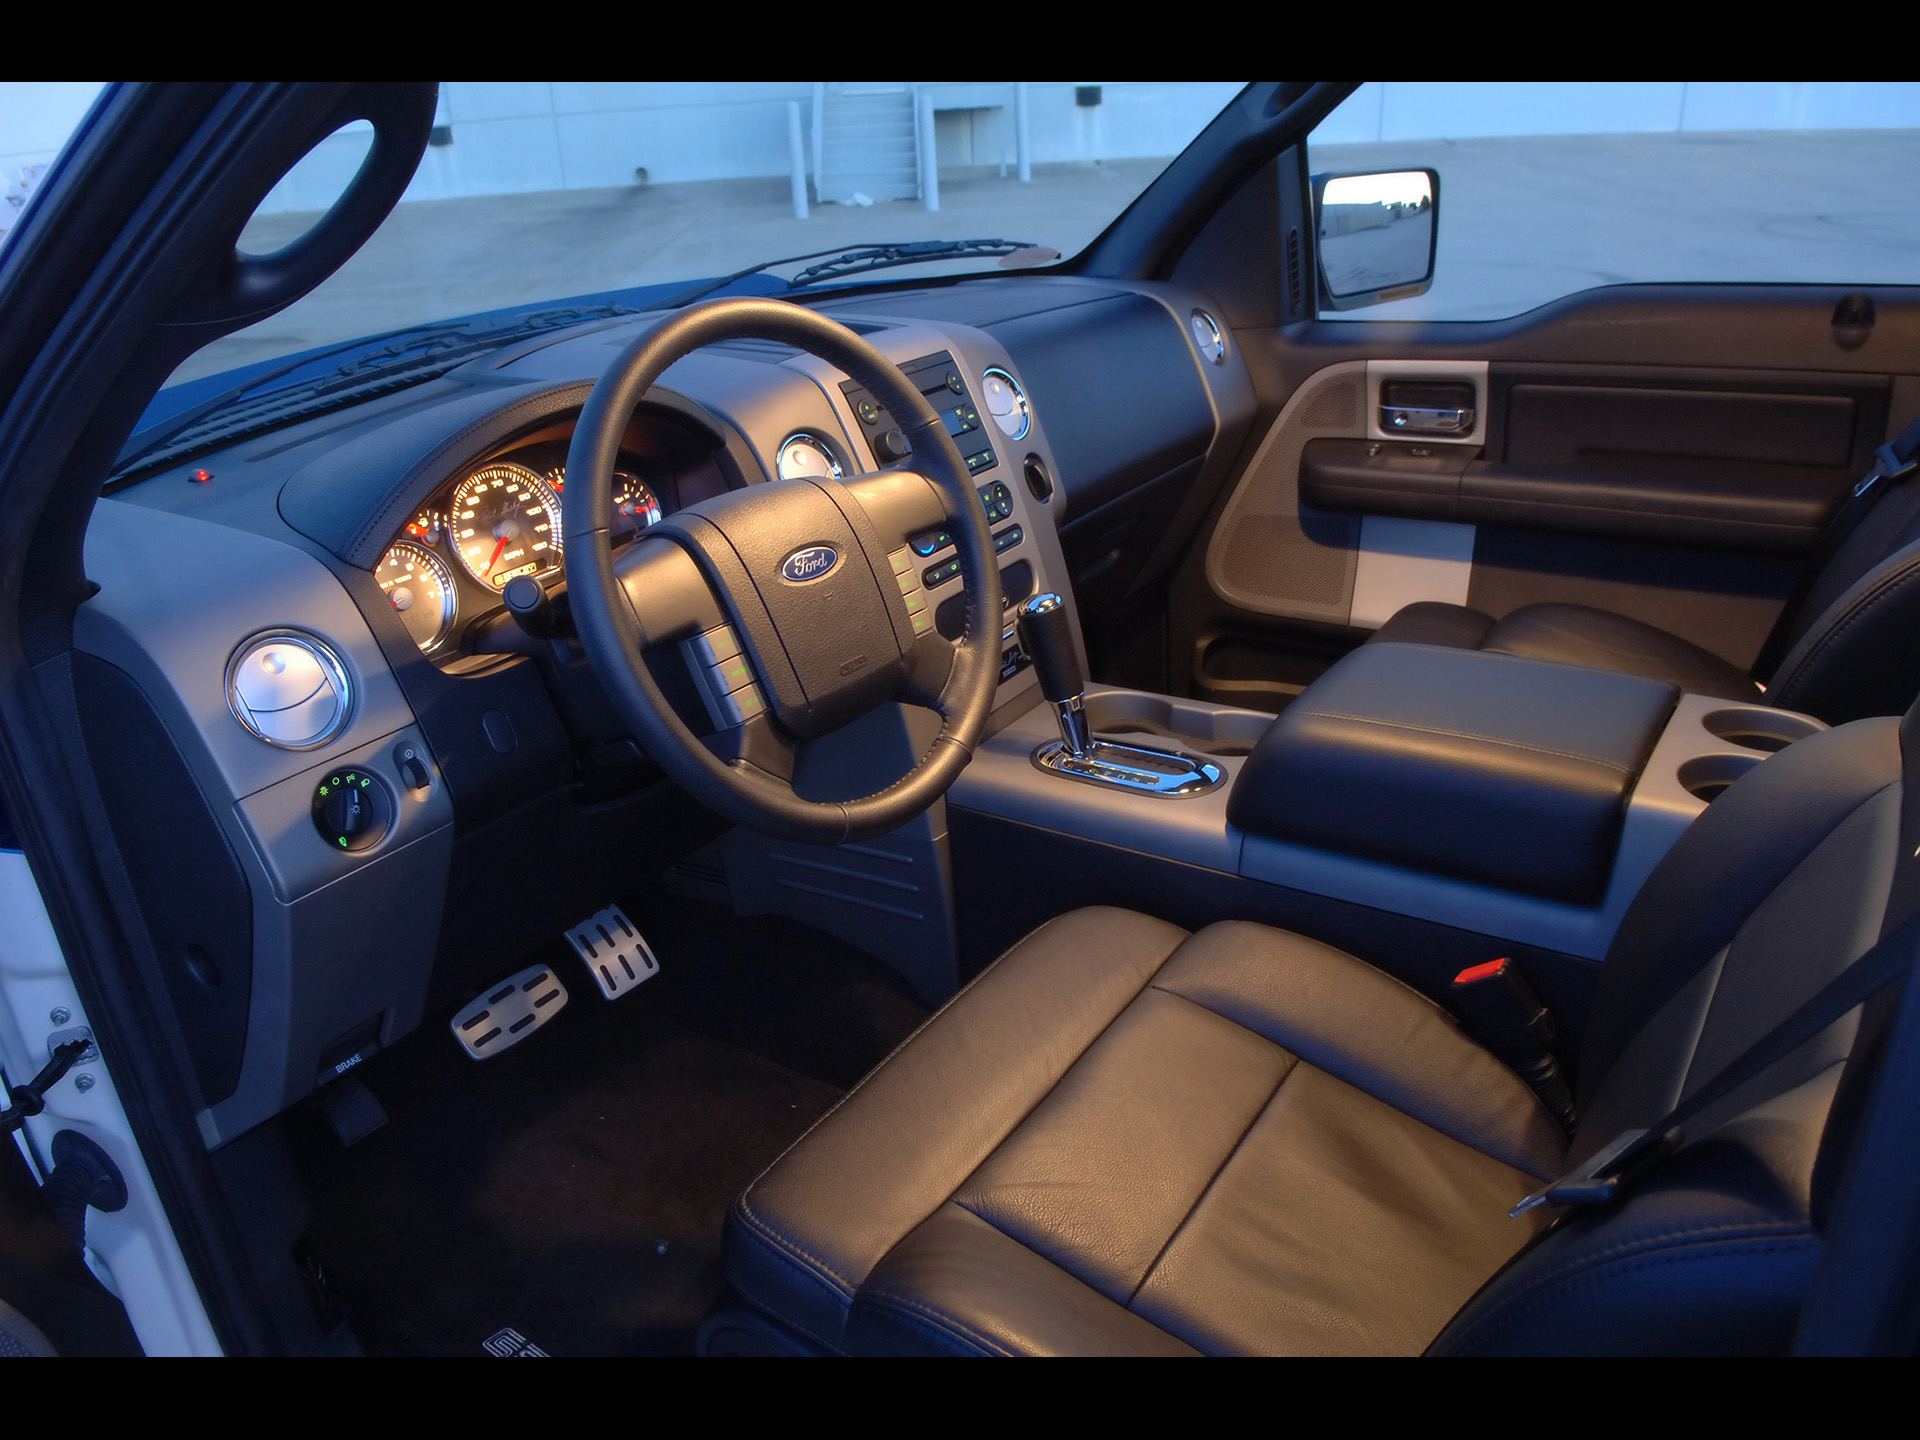 2006 Shelby GT 150 Ford F150 F 150 Truck Muscle Tuning Interior Wallpaper |  1920x1440 | 111851 | WallpaperUP